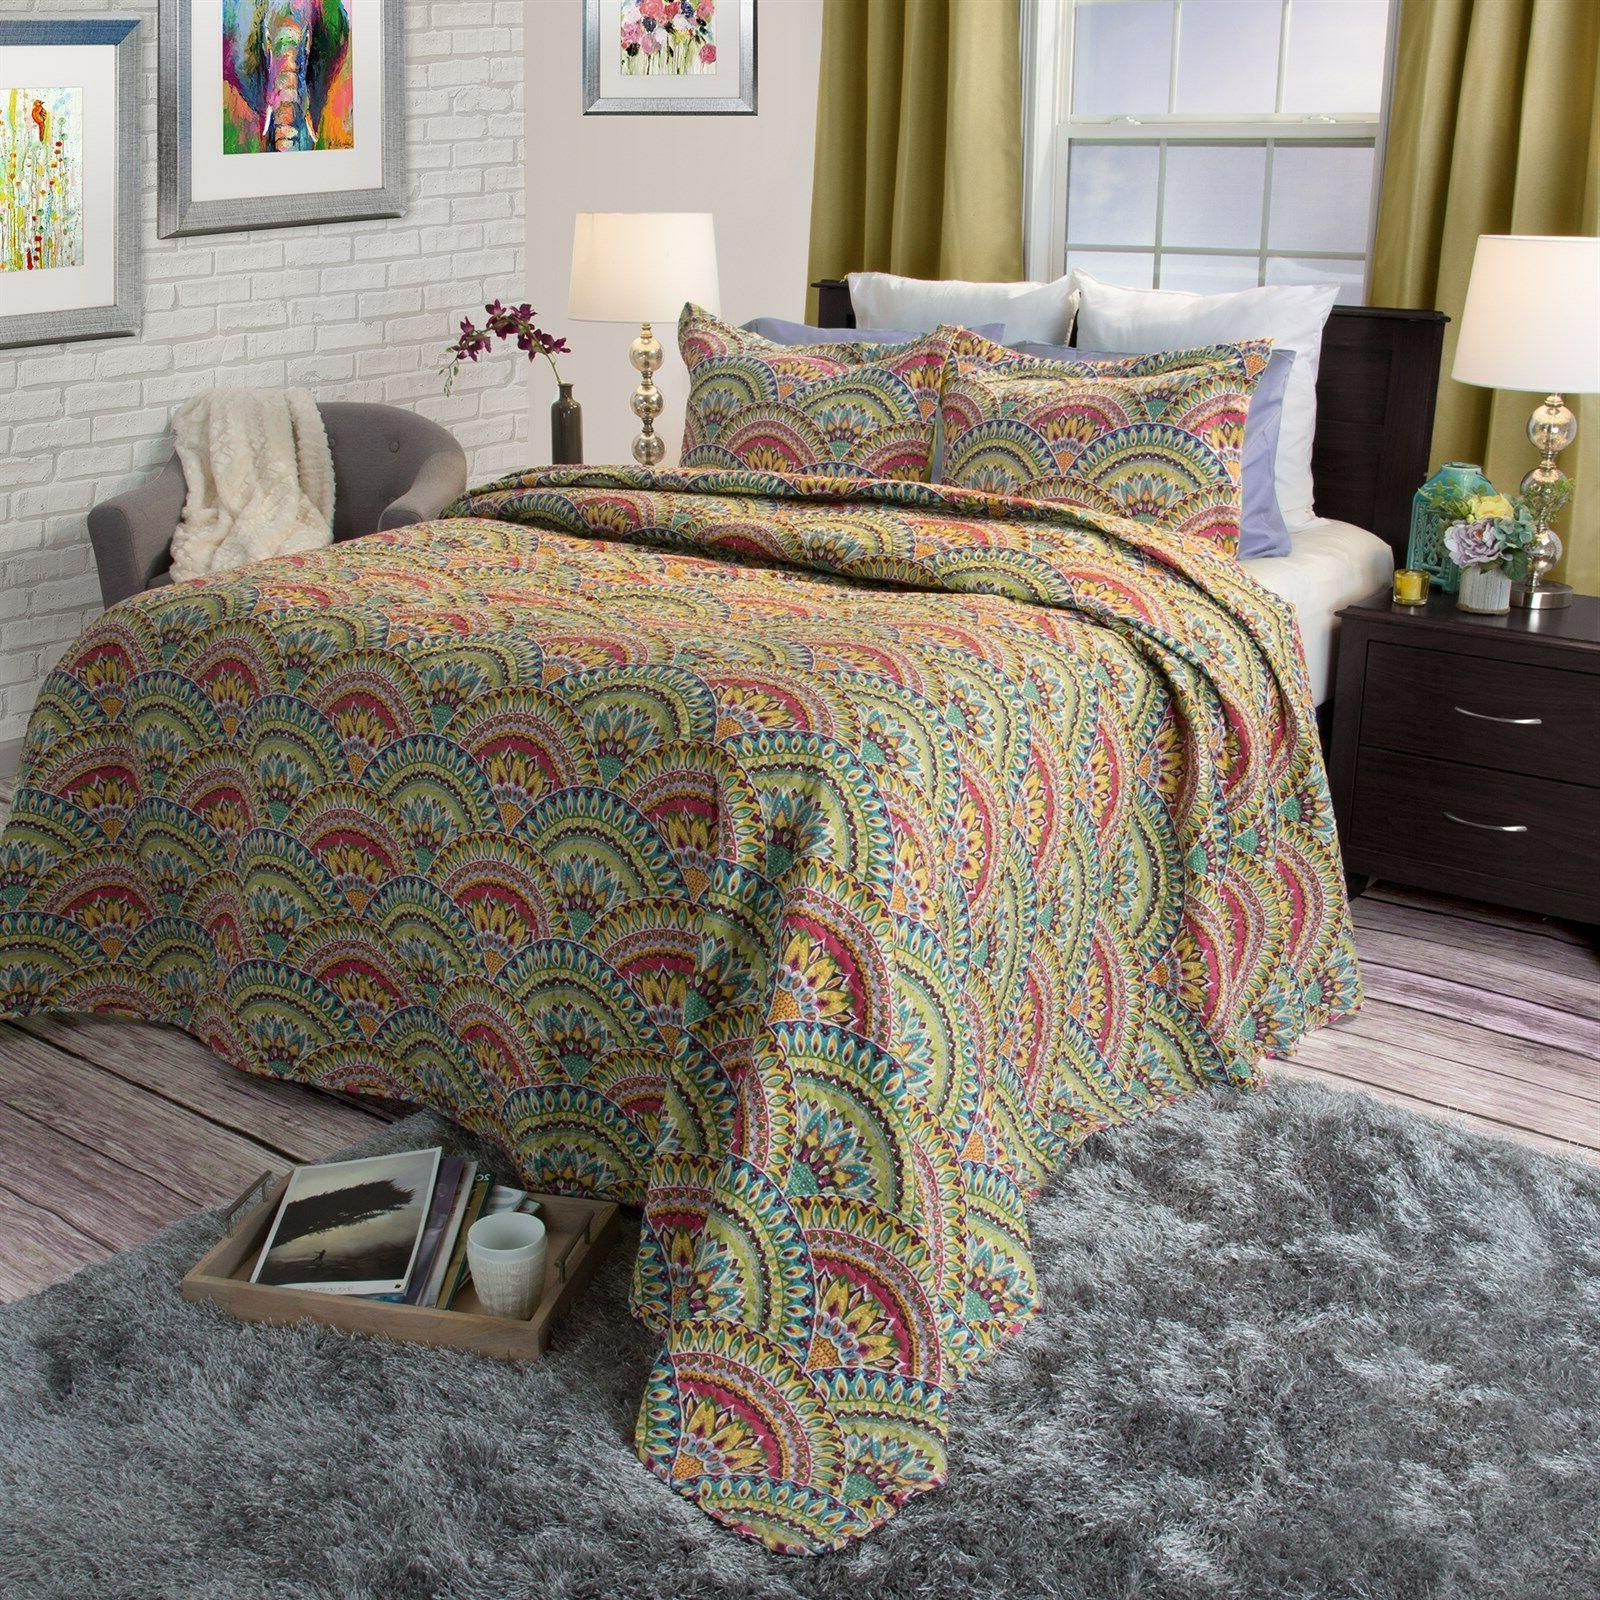 3 piece quilted blanket bed spread color